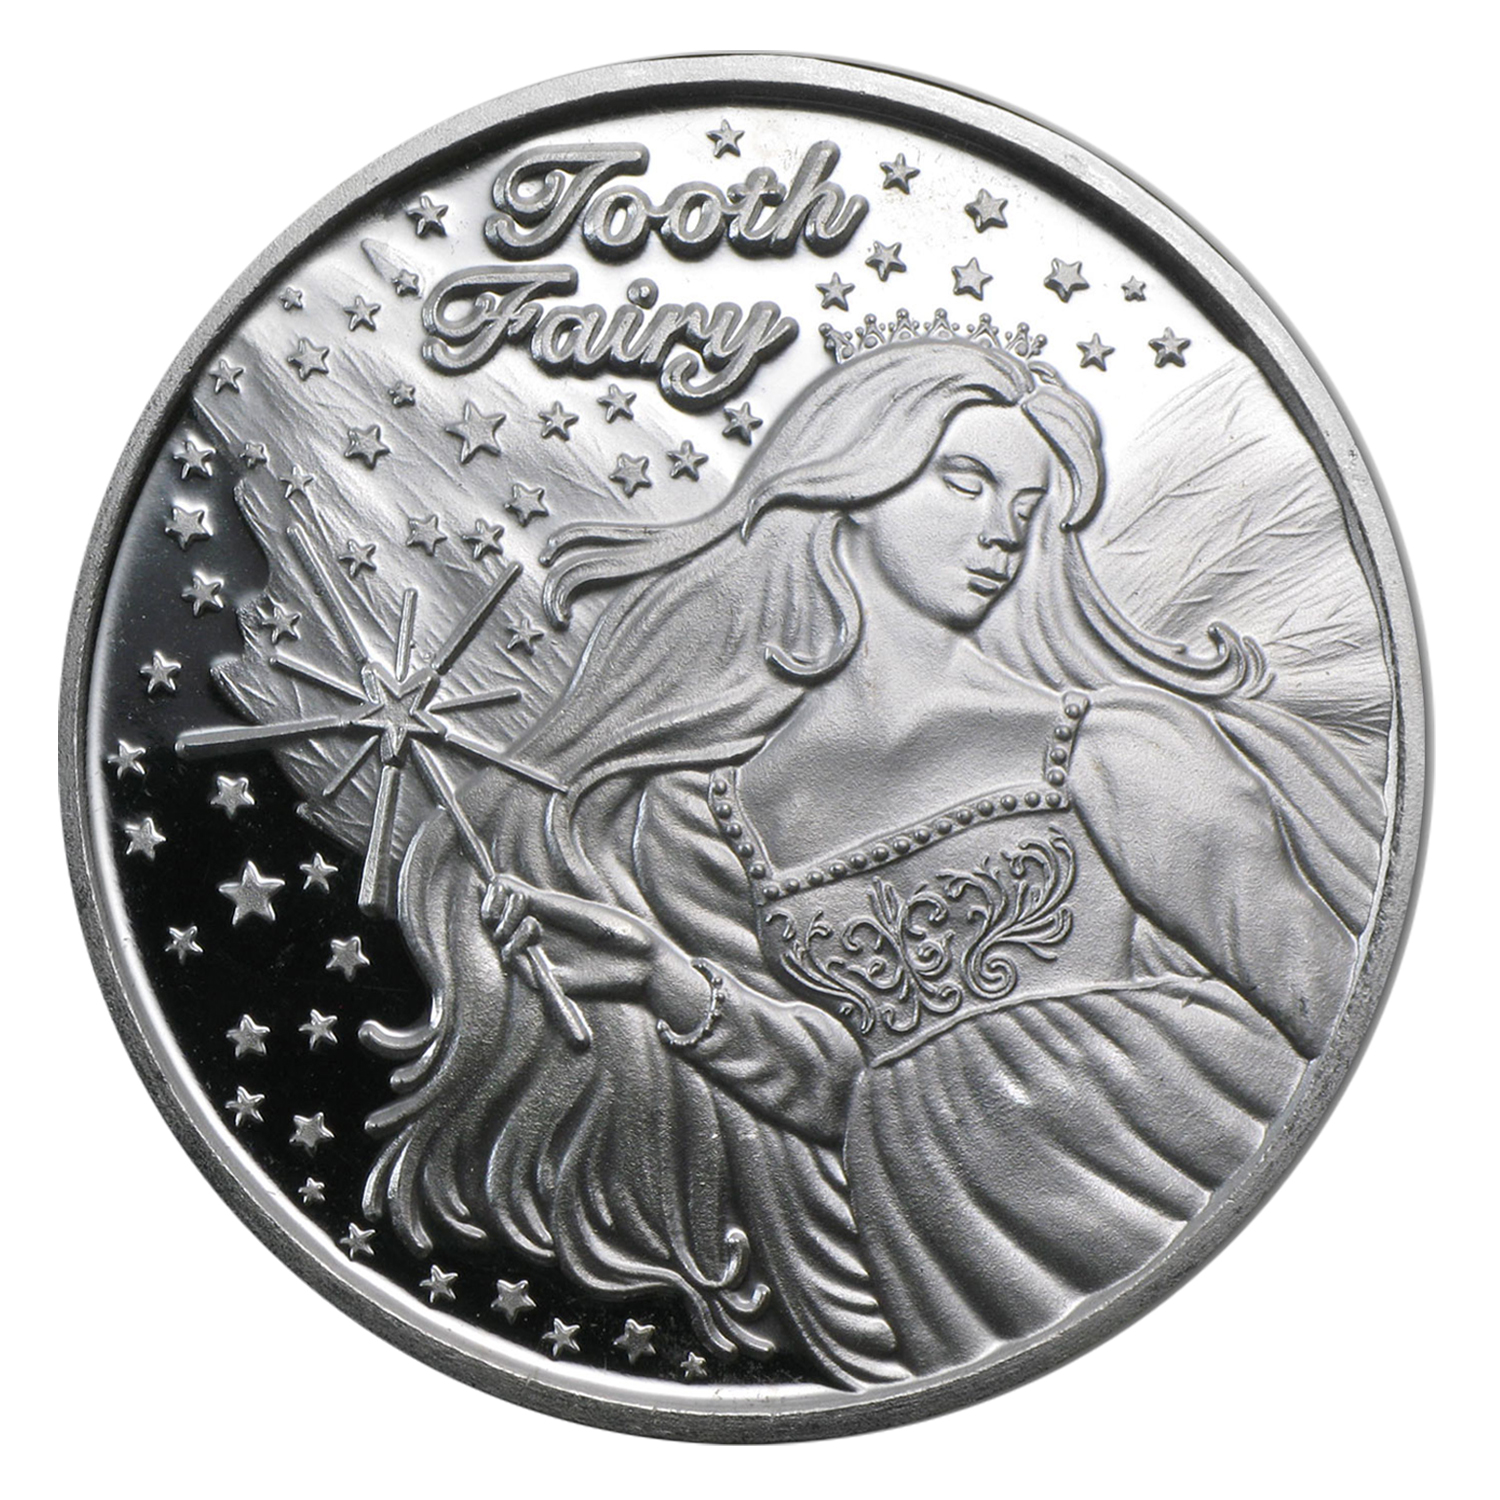 1 oz Silver Rounds - Tooth Fairy